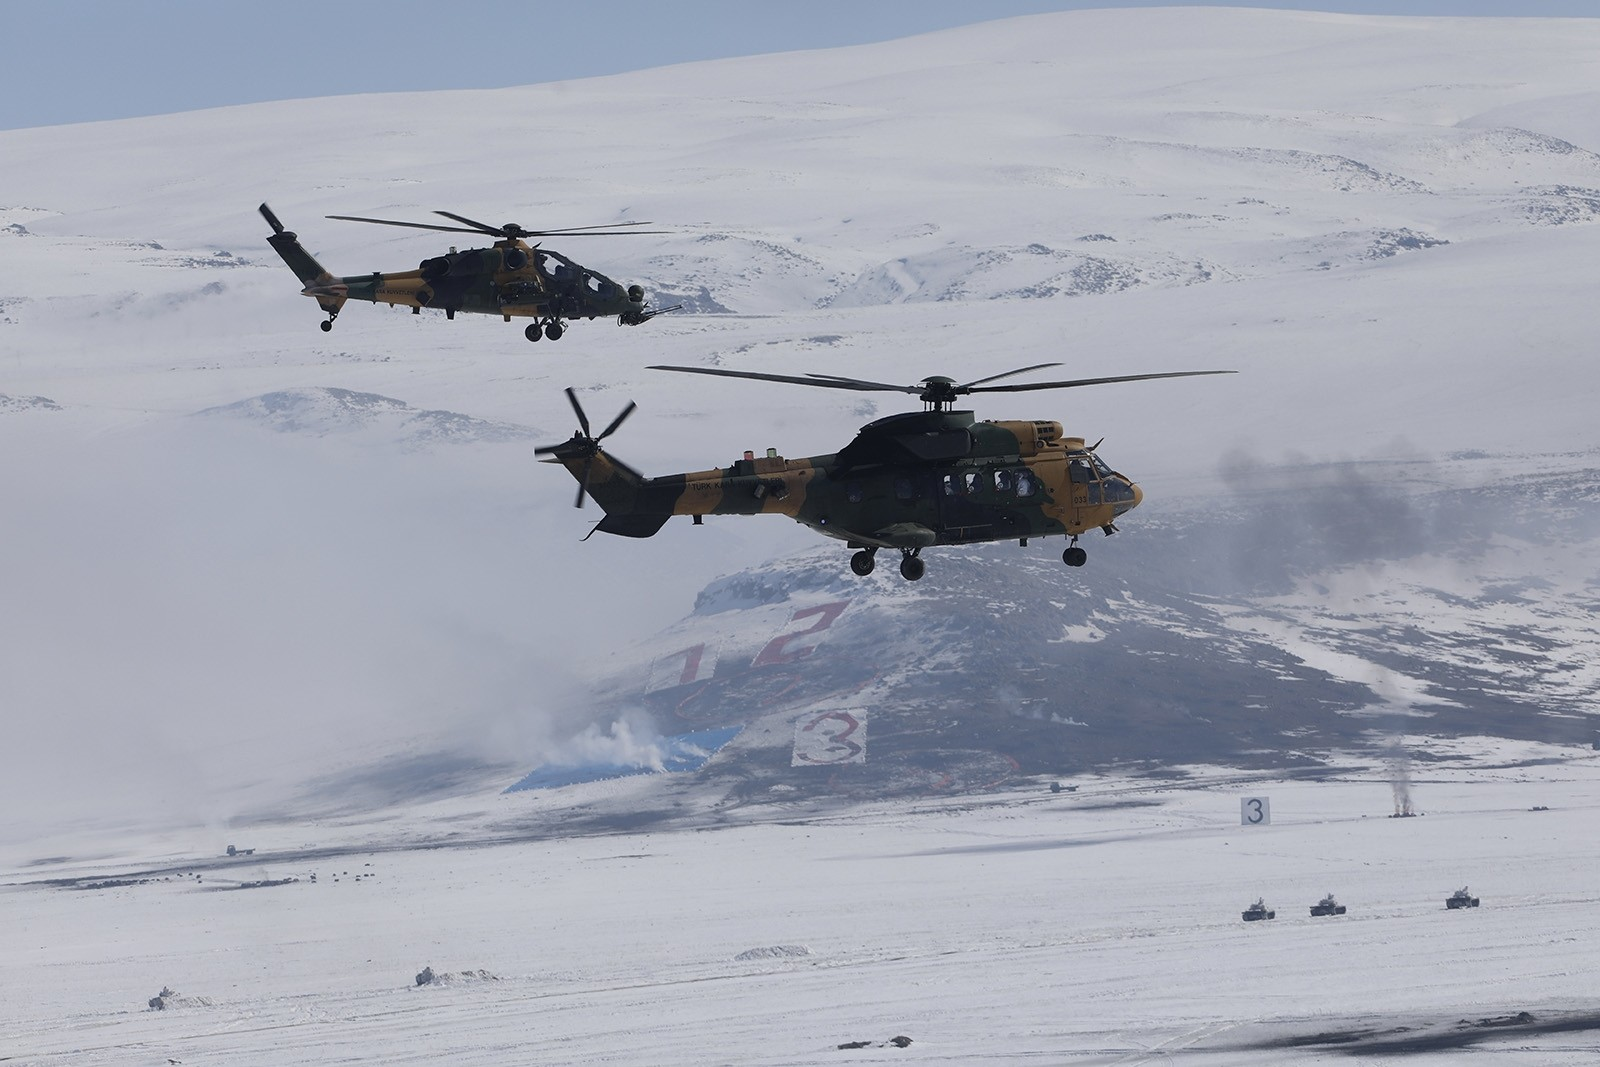 Turkey's Winter-2019 exercises